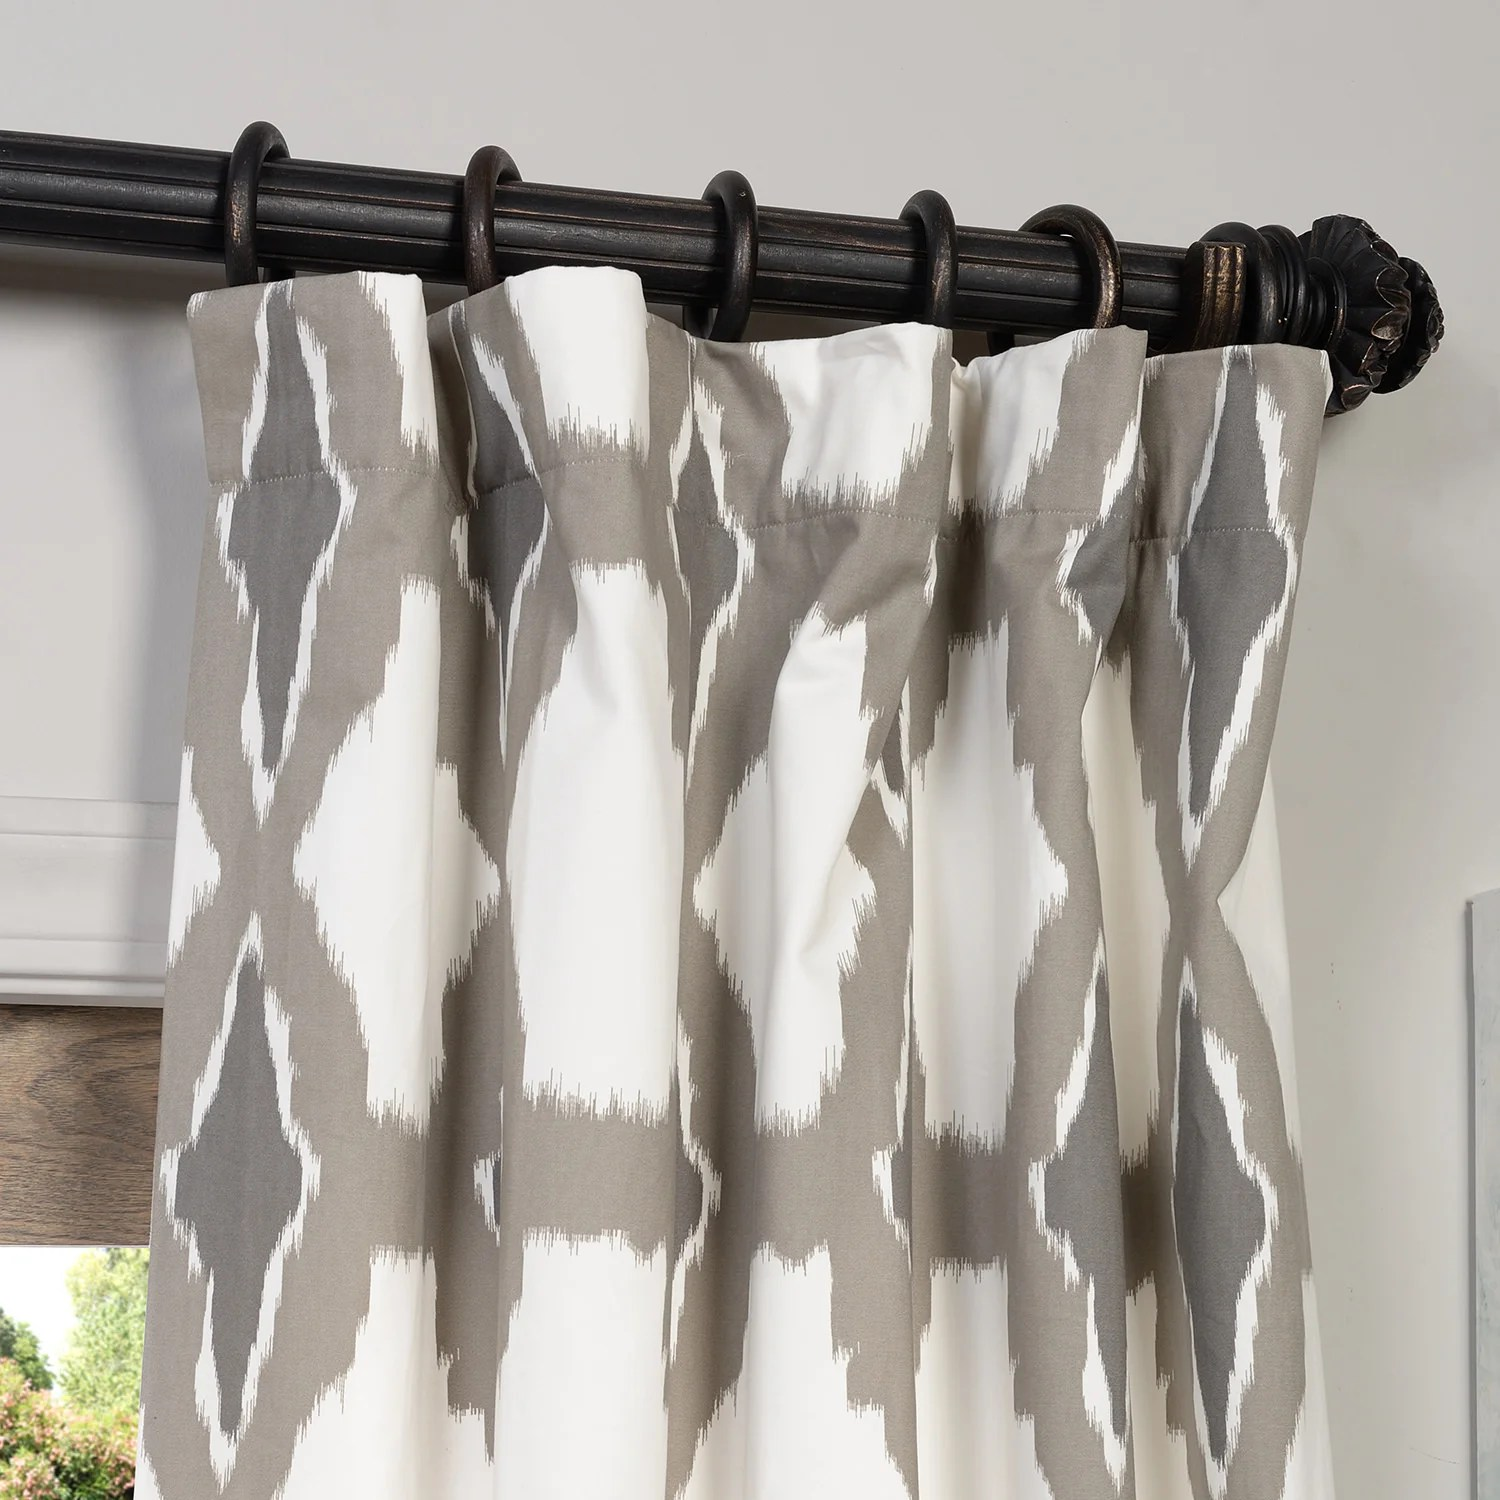 cost of dry cleaning curtains | Functionalities.net